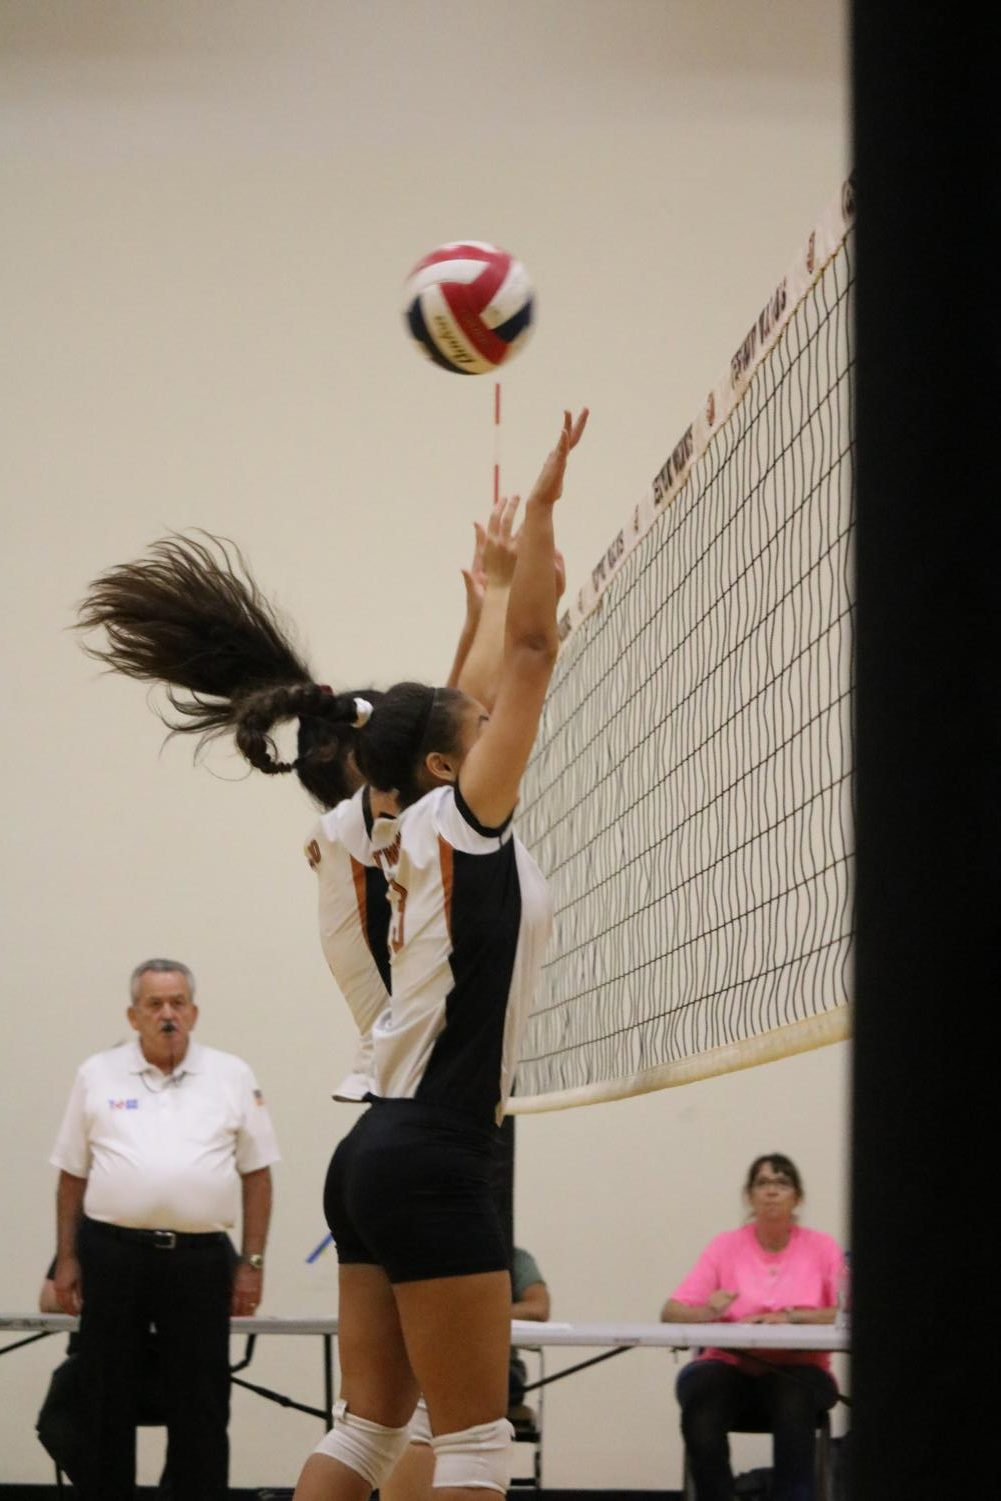 Milacey+Gremillion-Llanos+%2722+and+Lauren+Lopato+%2722+attempt+to+block+the+ball+from+getting+over+the+net.